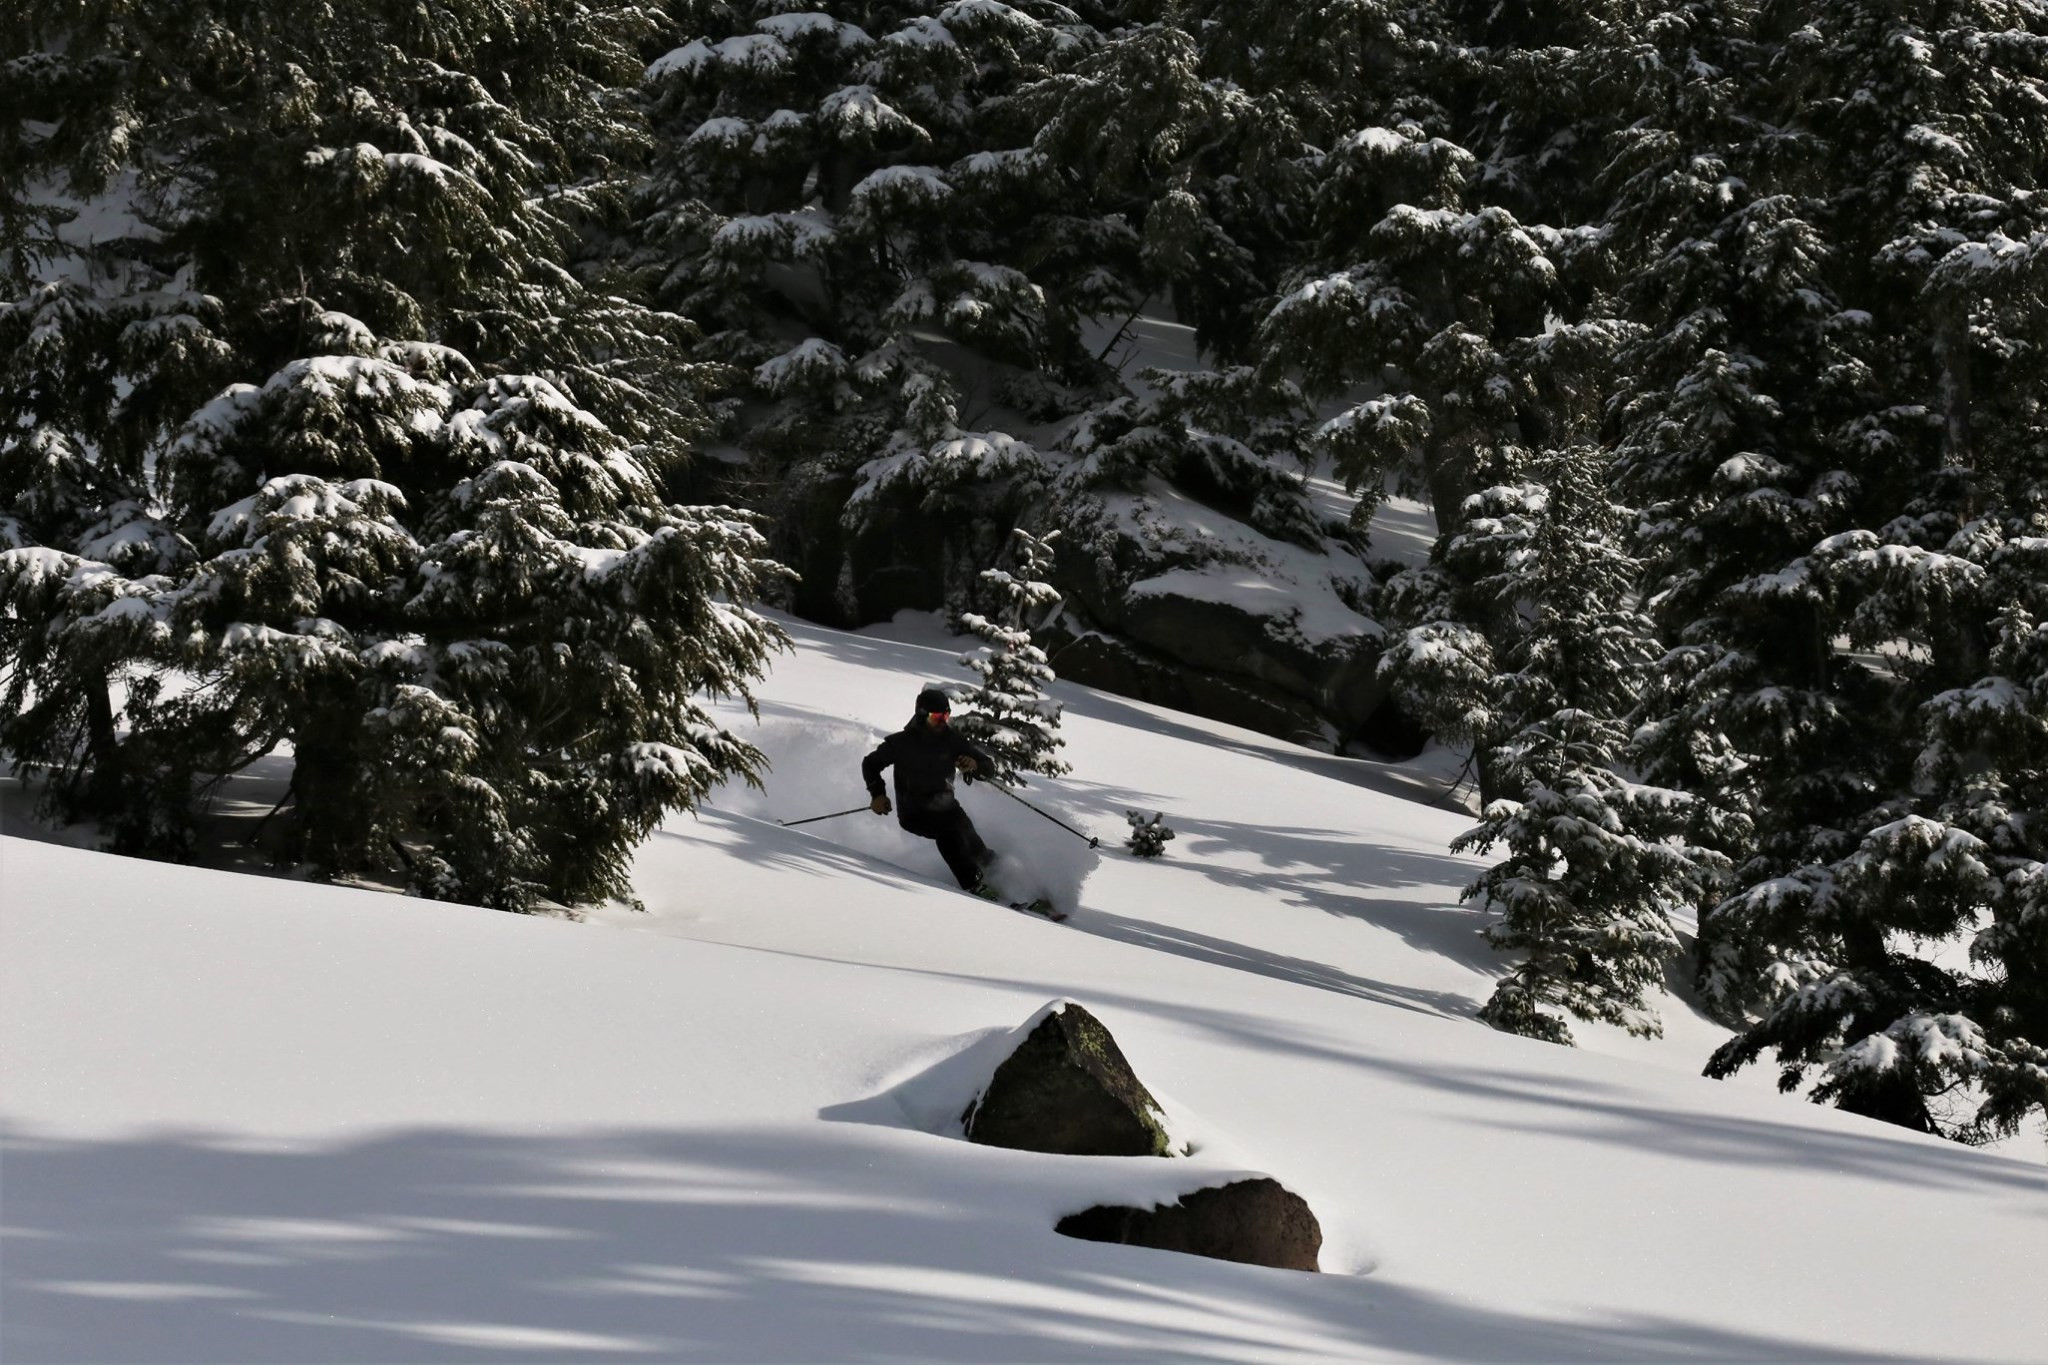 first to report more than 5m (17ft) snow depth on upper slopes, Mt Hood Meadows